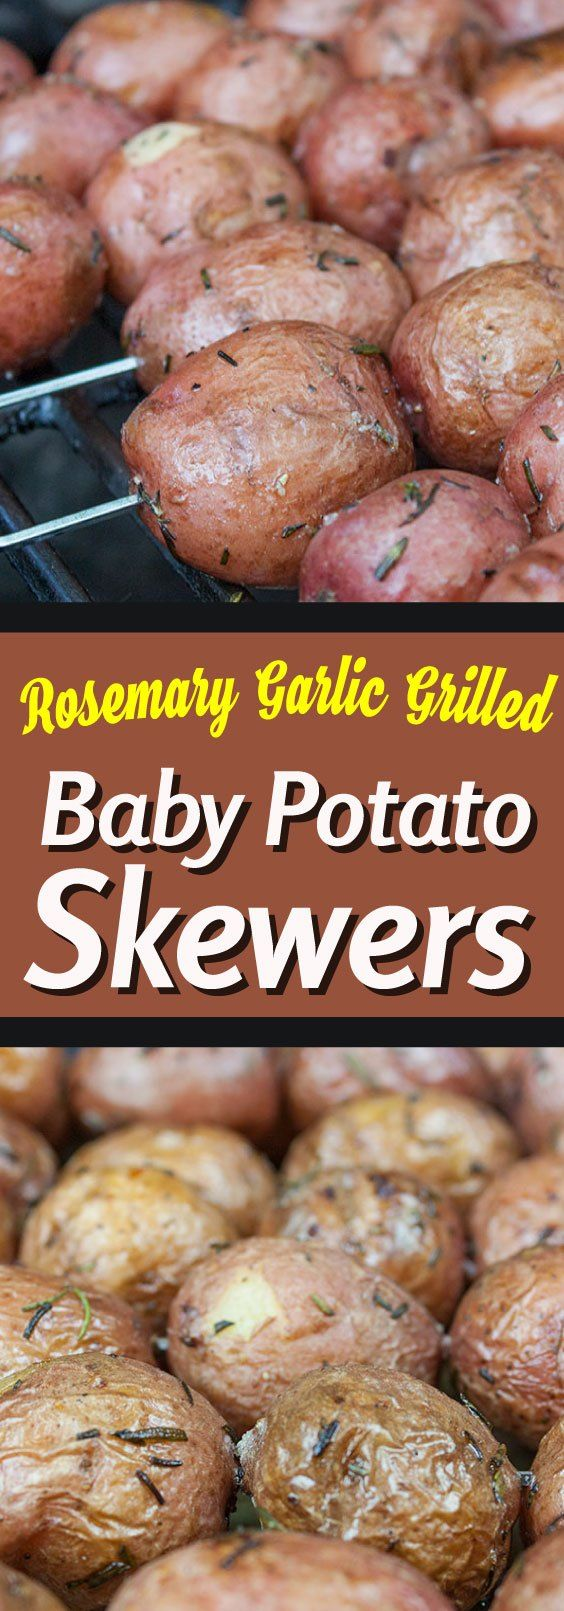 Rosemary Garlic Grilled Baby Potato Skewers - A great side dish for those summer barbecues. Fluffy inside, slightly crispy outside, infused with herb and garlic flavor.